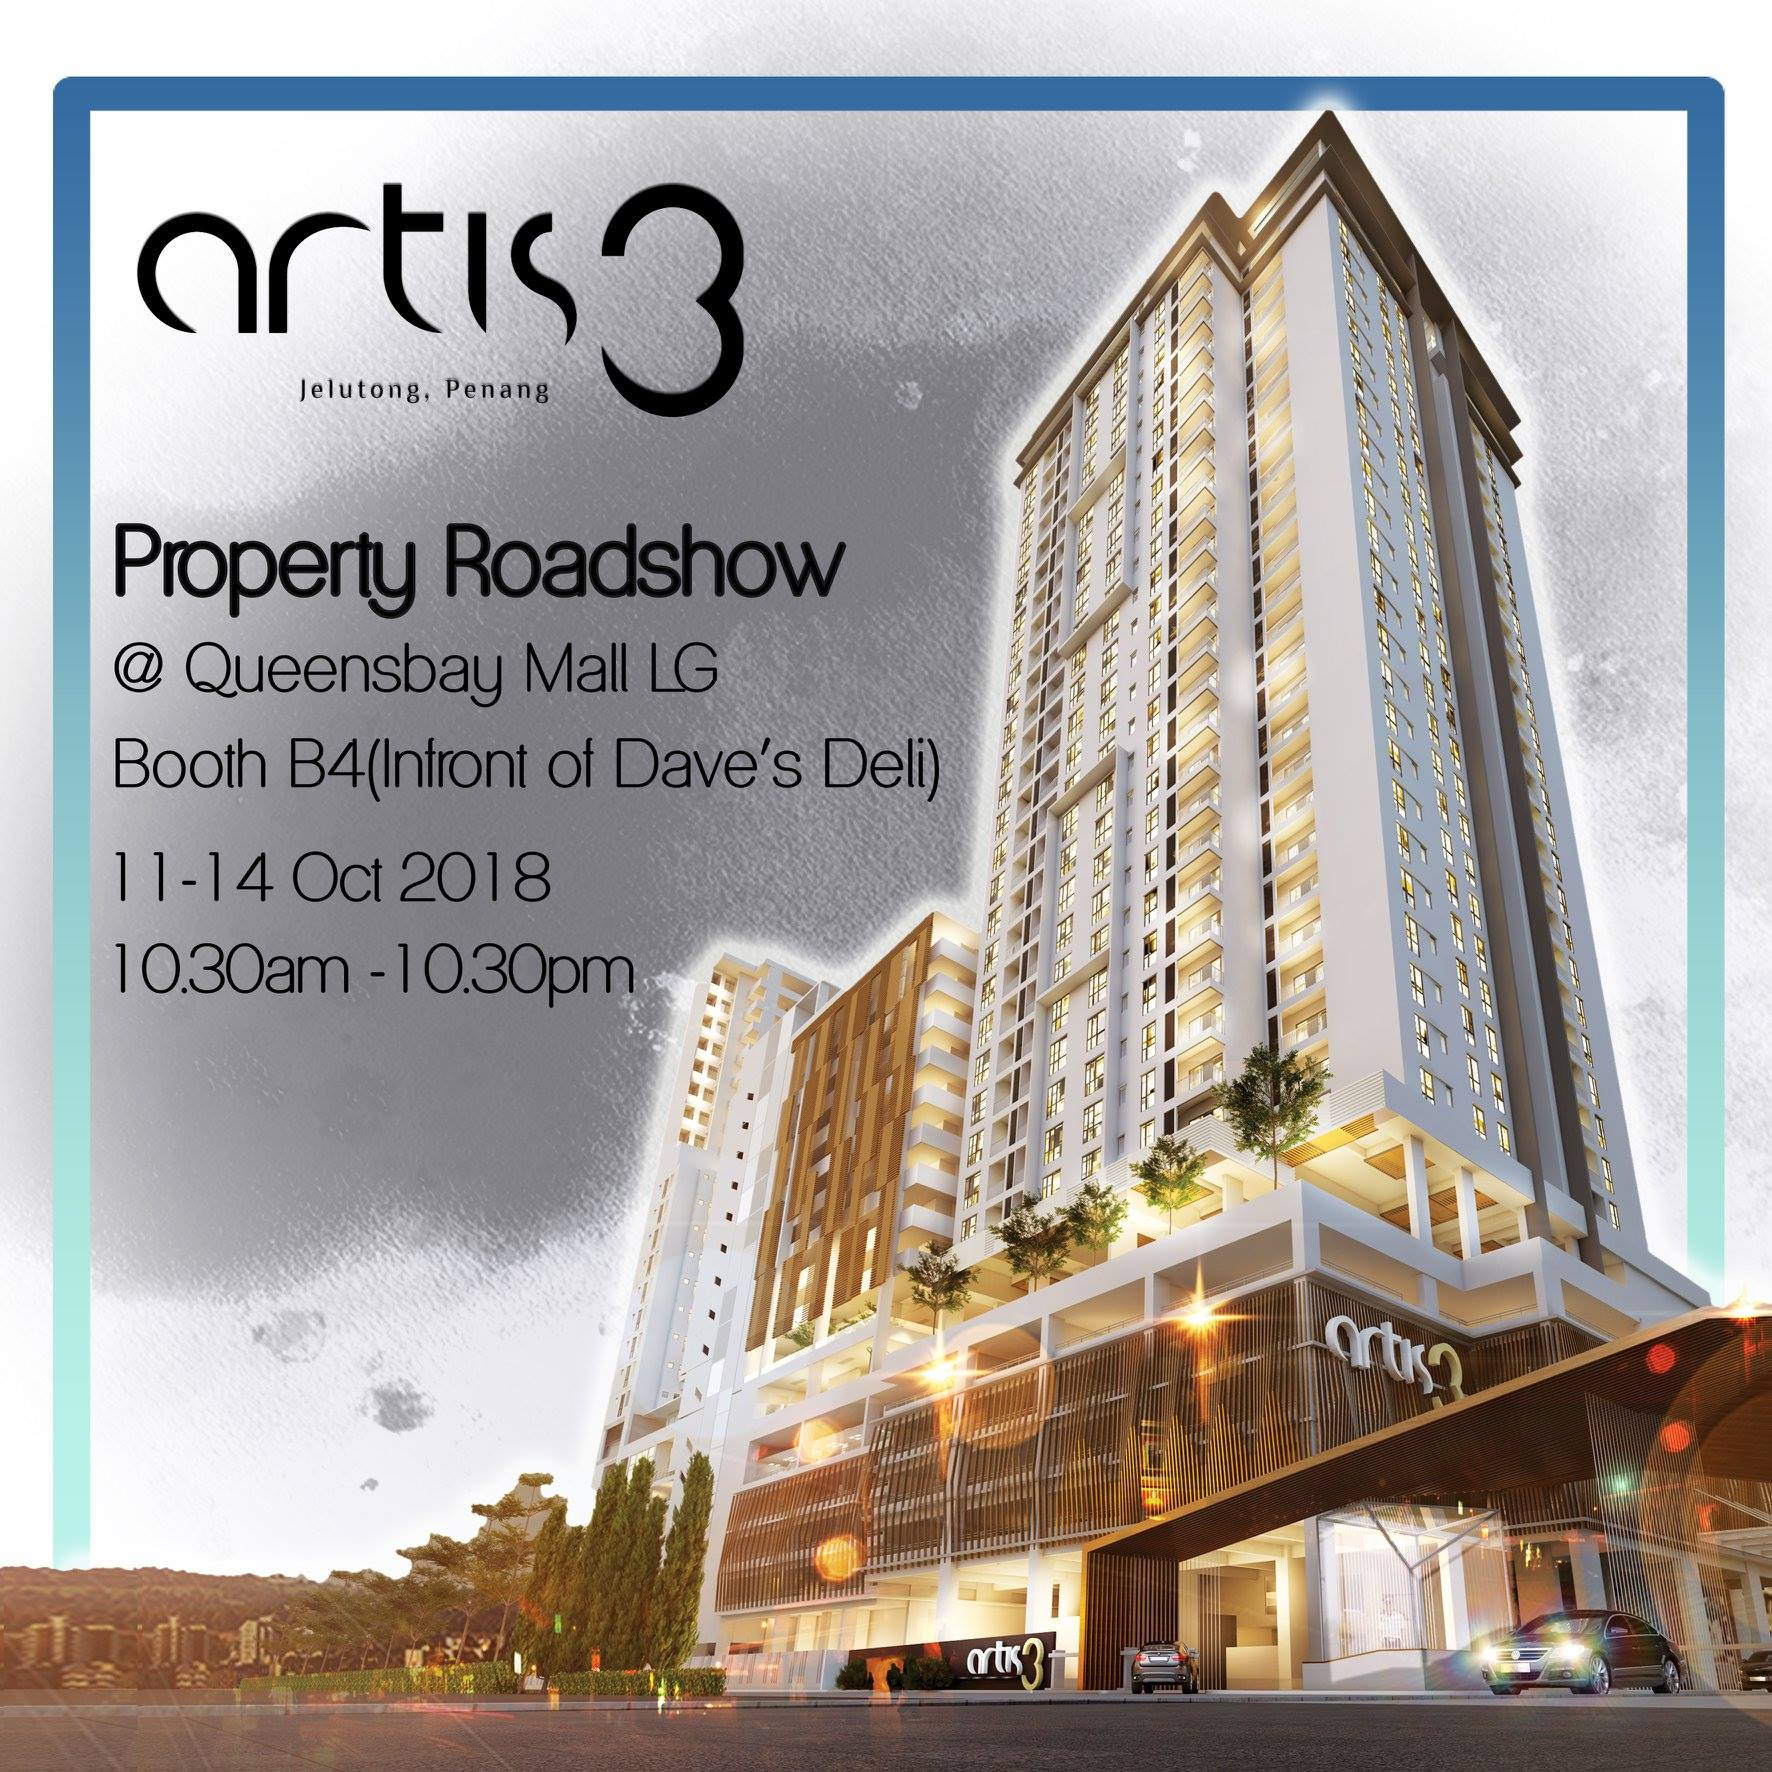 Artis 3 property roadshow